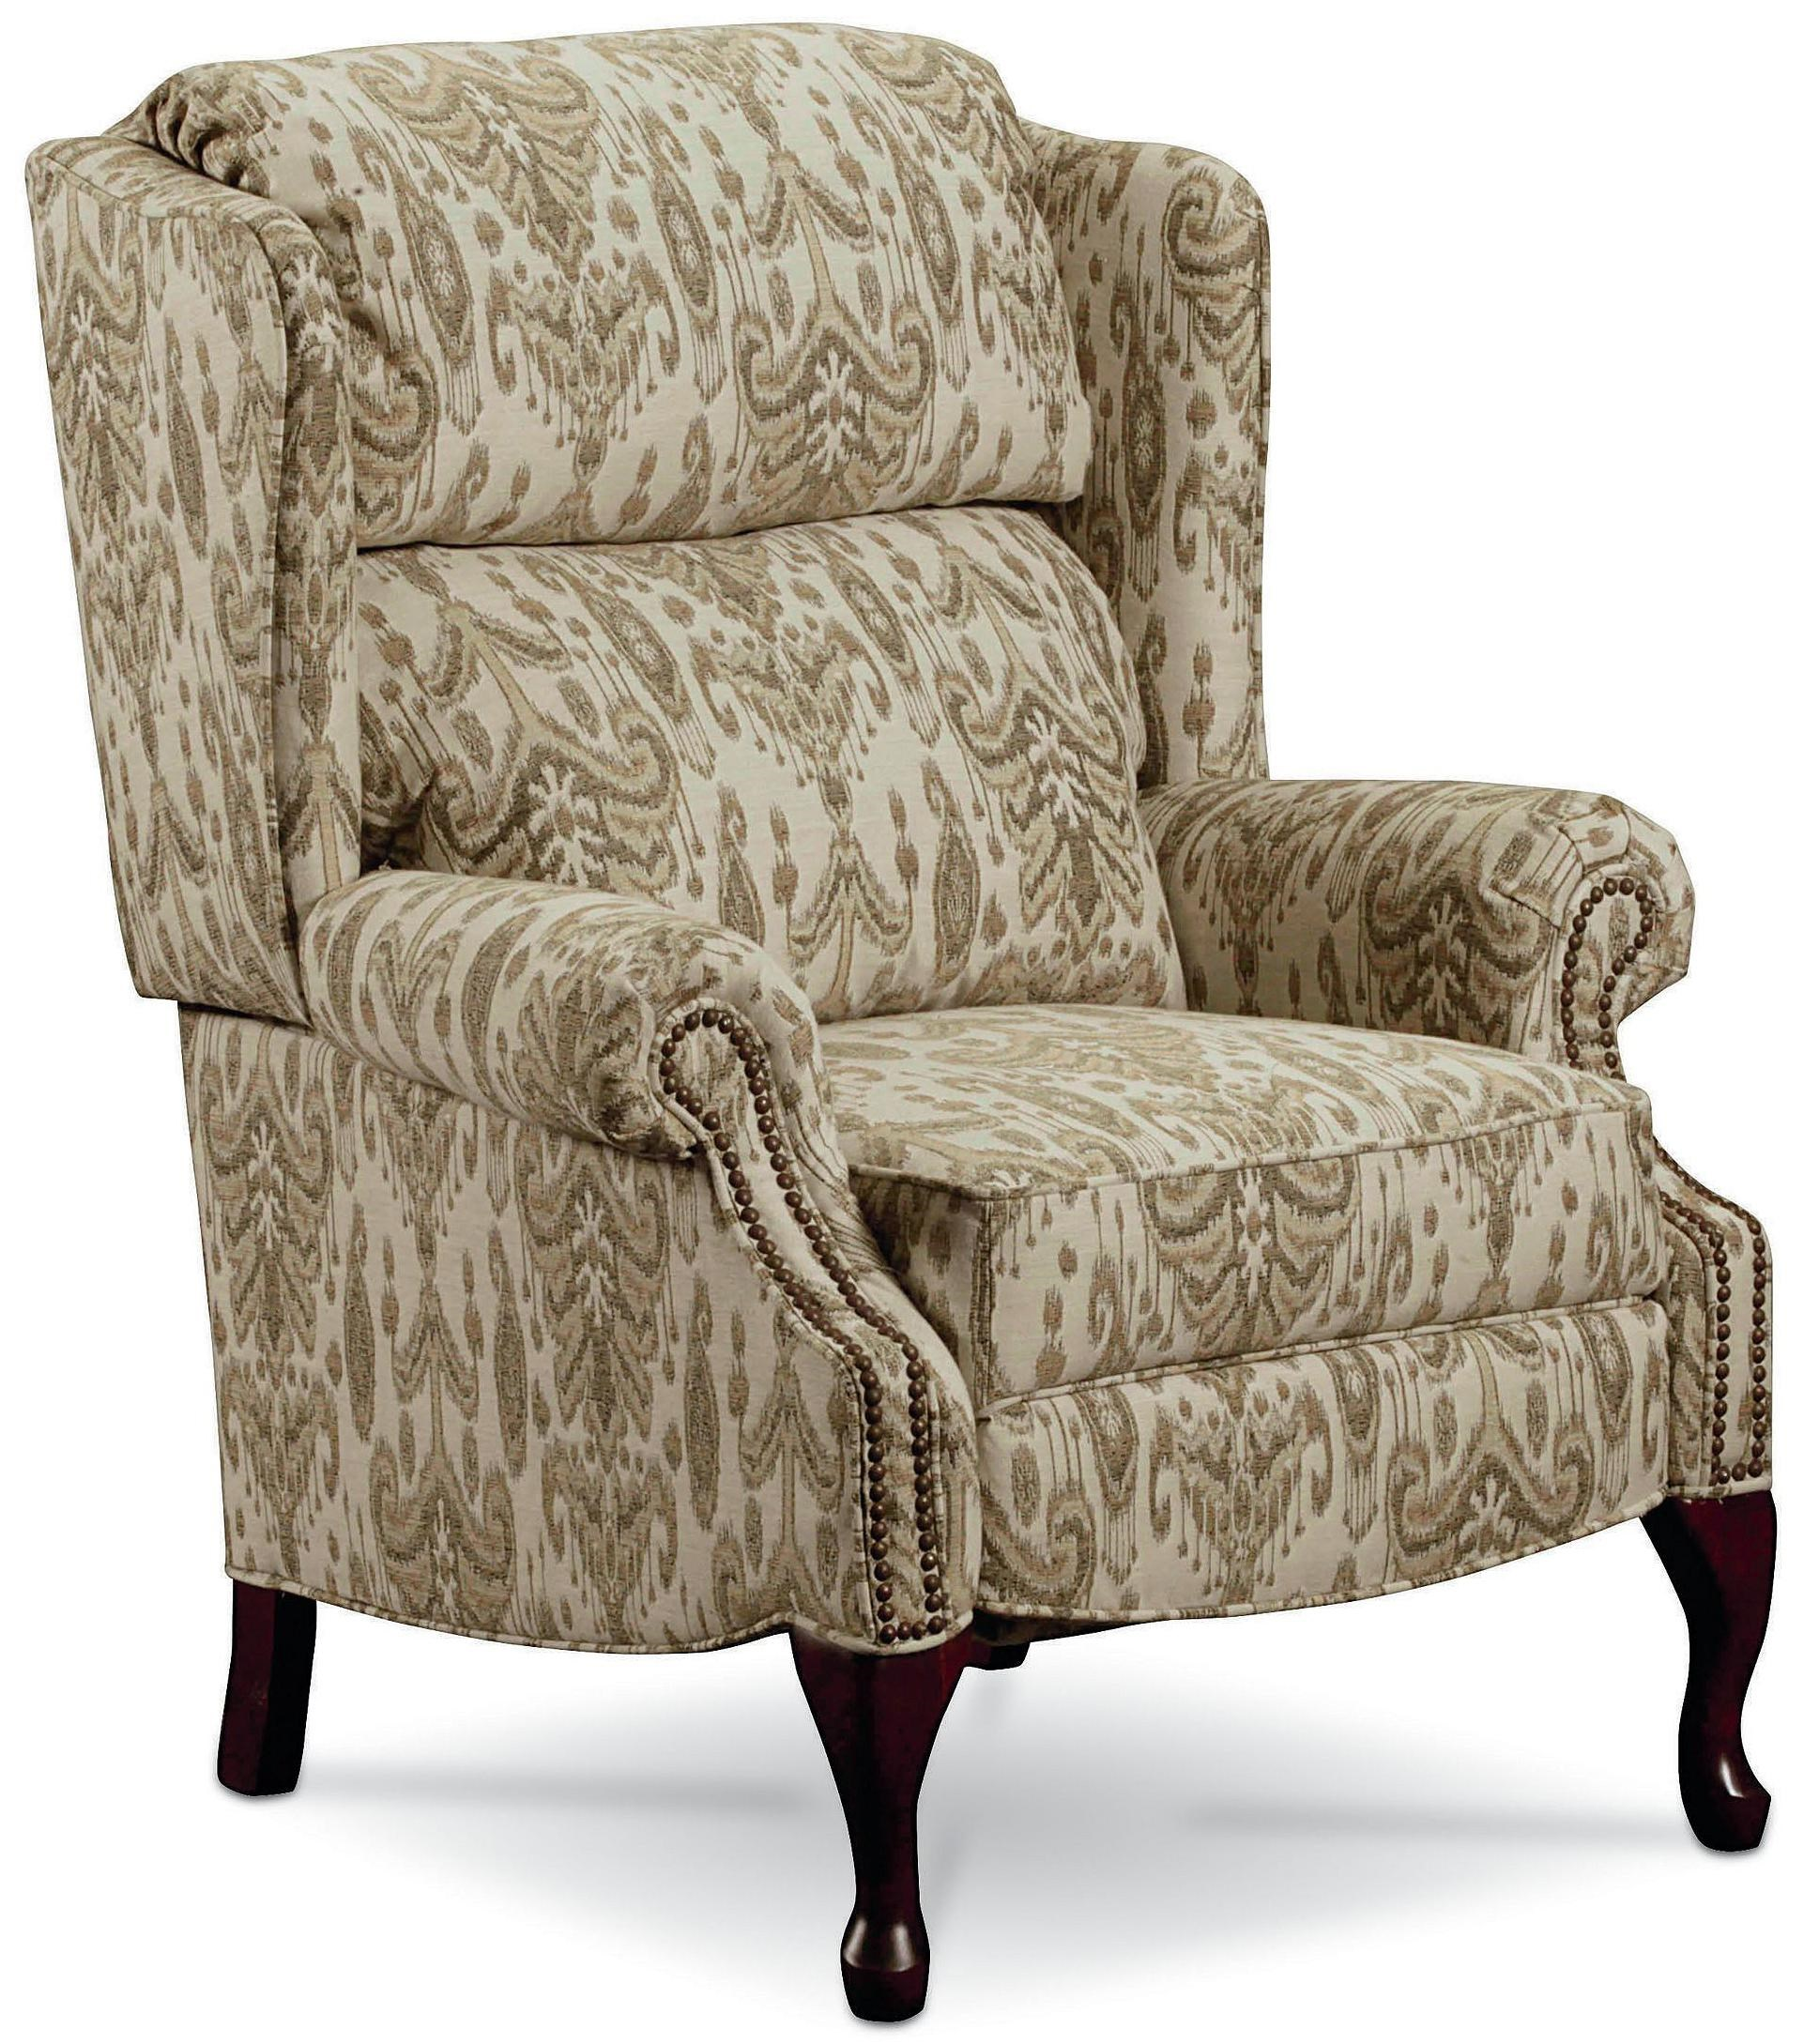 Wingback Recliner Chair Hi Leg Recliners Savannah High Leg Wing Back Recliner By Lane At Rune S Furniture